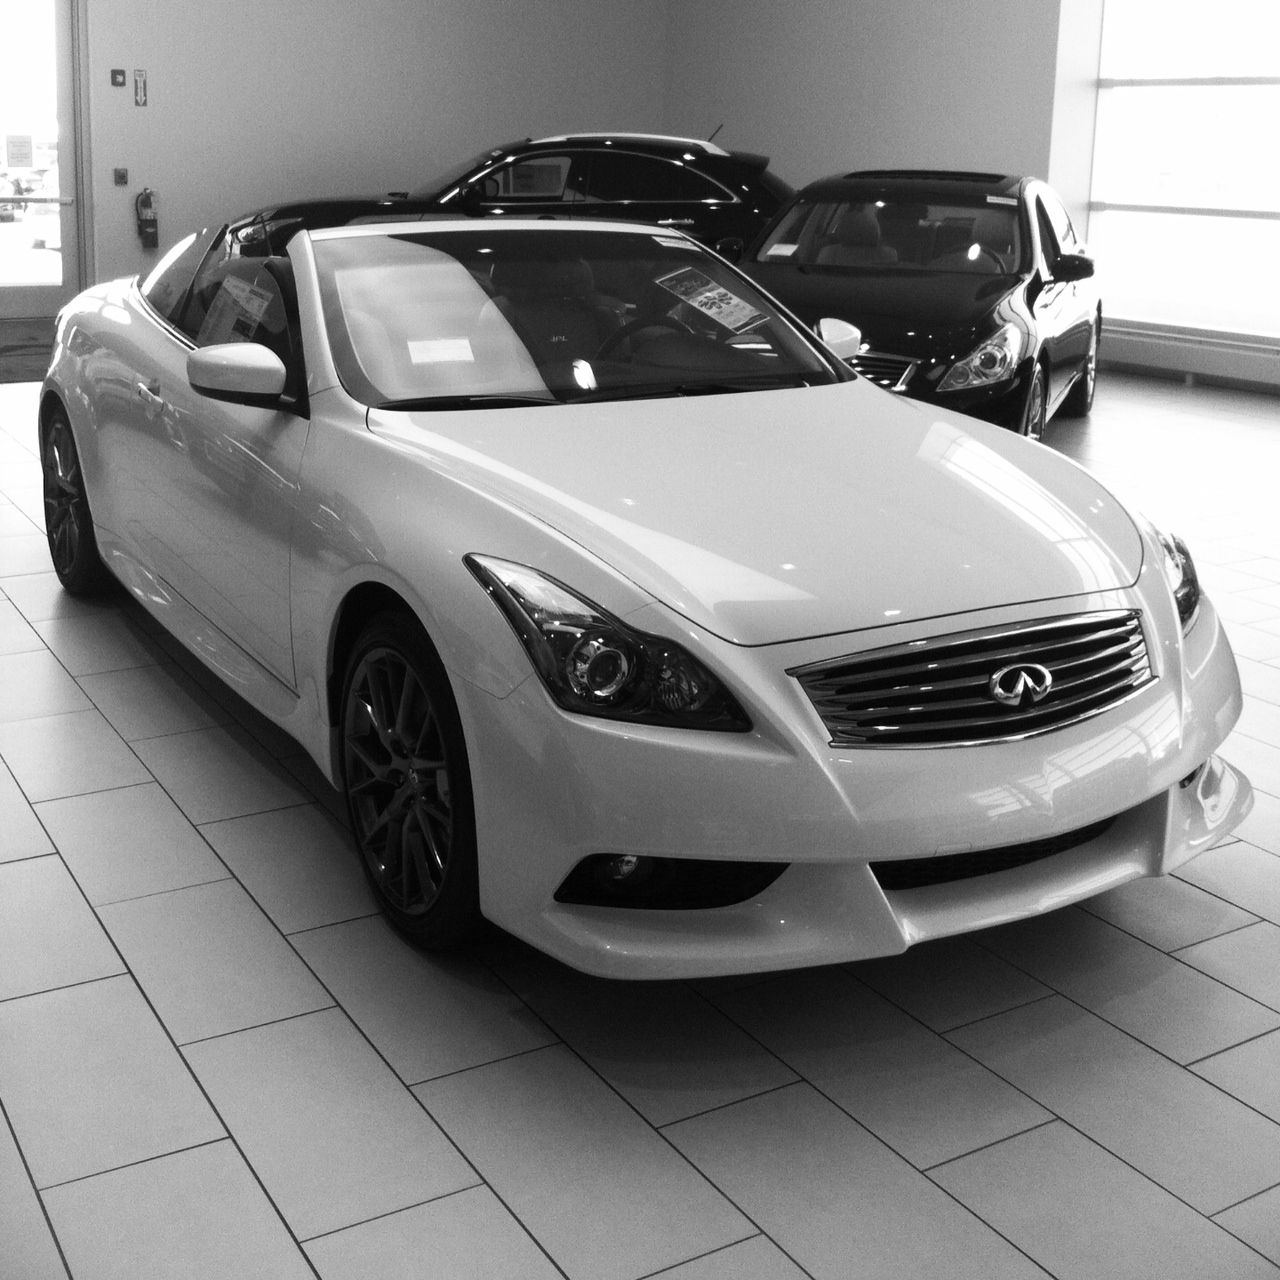 2013 infiniti g37 ipl convertible in moonlight white with - Infiniti g37 red interior for sale ...